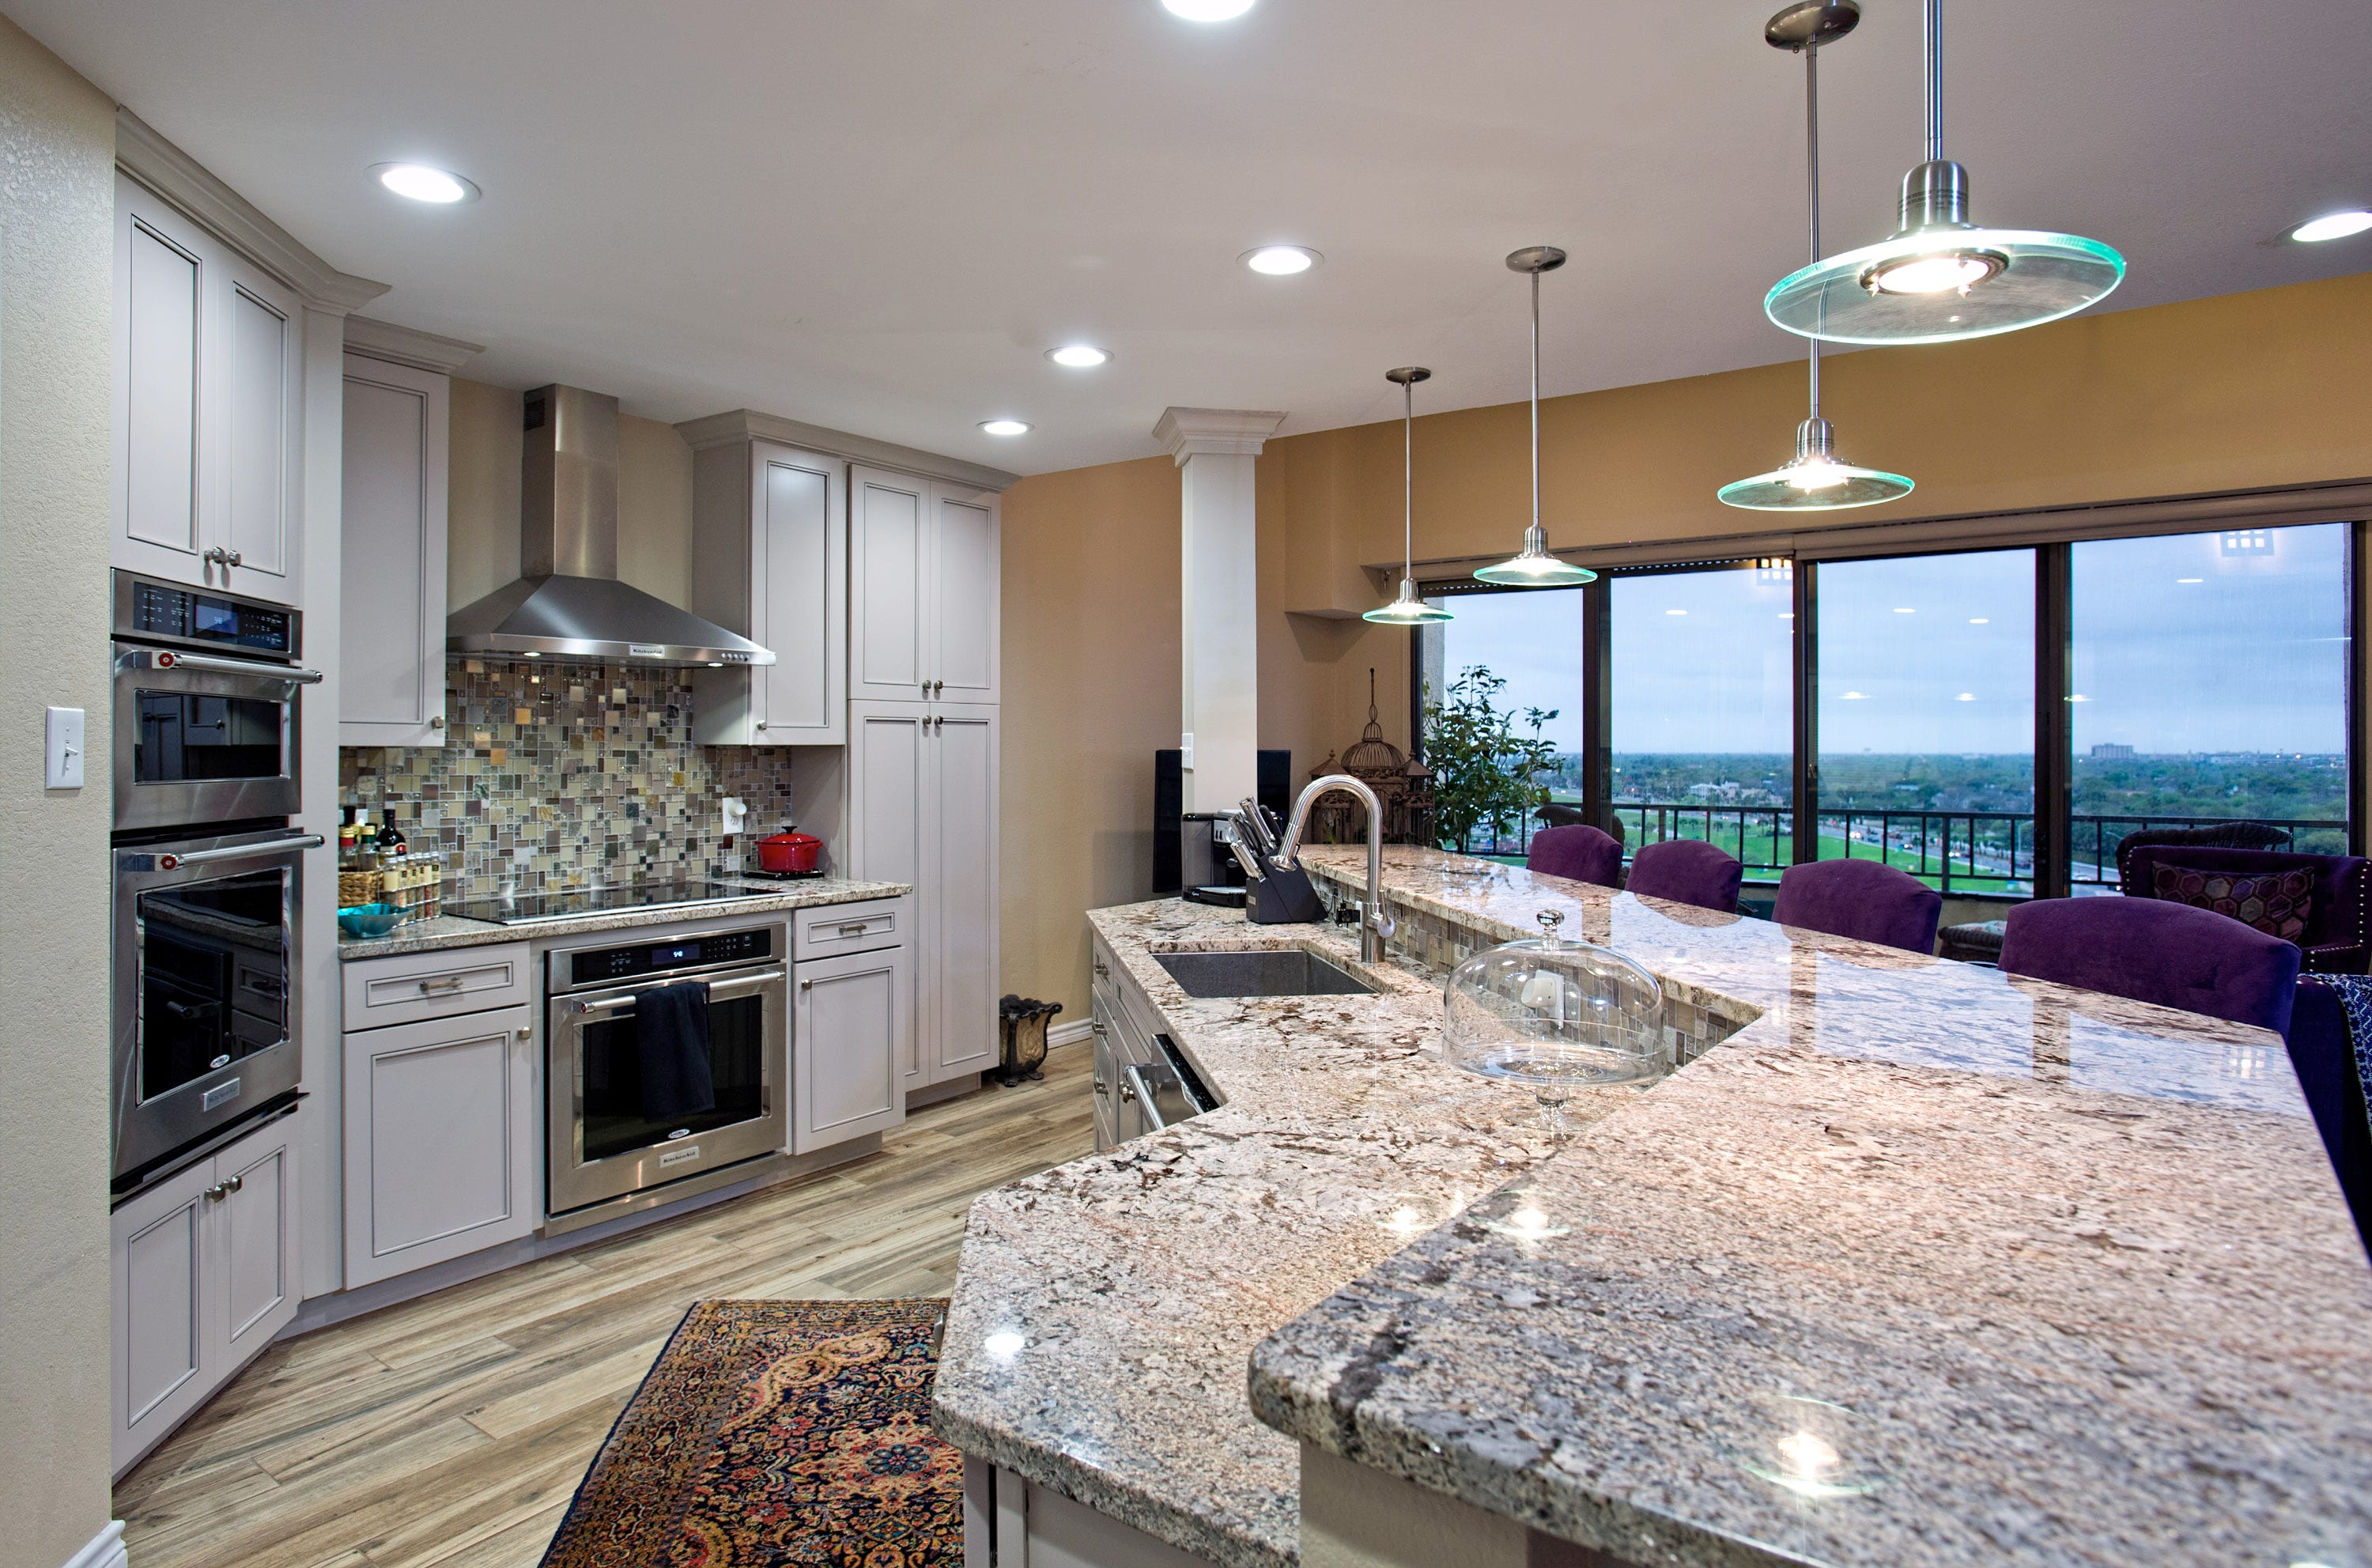 The Gourmet Kitchen Features Beautiful Granite Countertops,